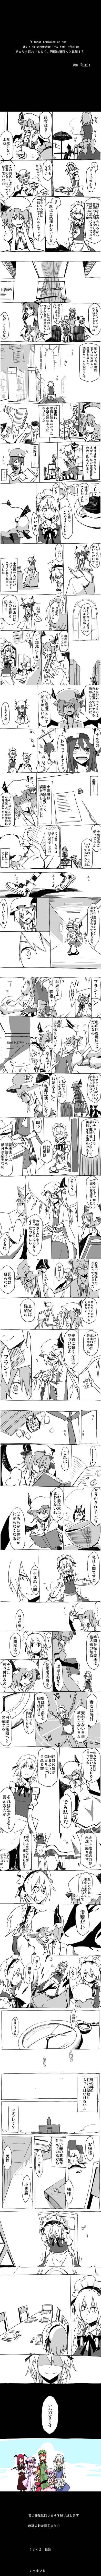 flandre scarlet, hong meiling, izayoi sakuya, koakuma, patchouli knowledge, and others (touhou) drawn by shiroshi (denpa eshidan)